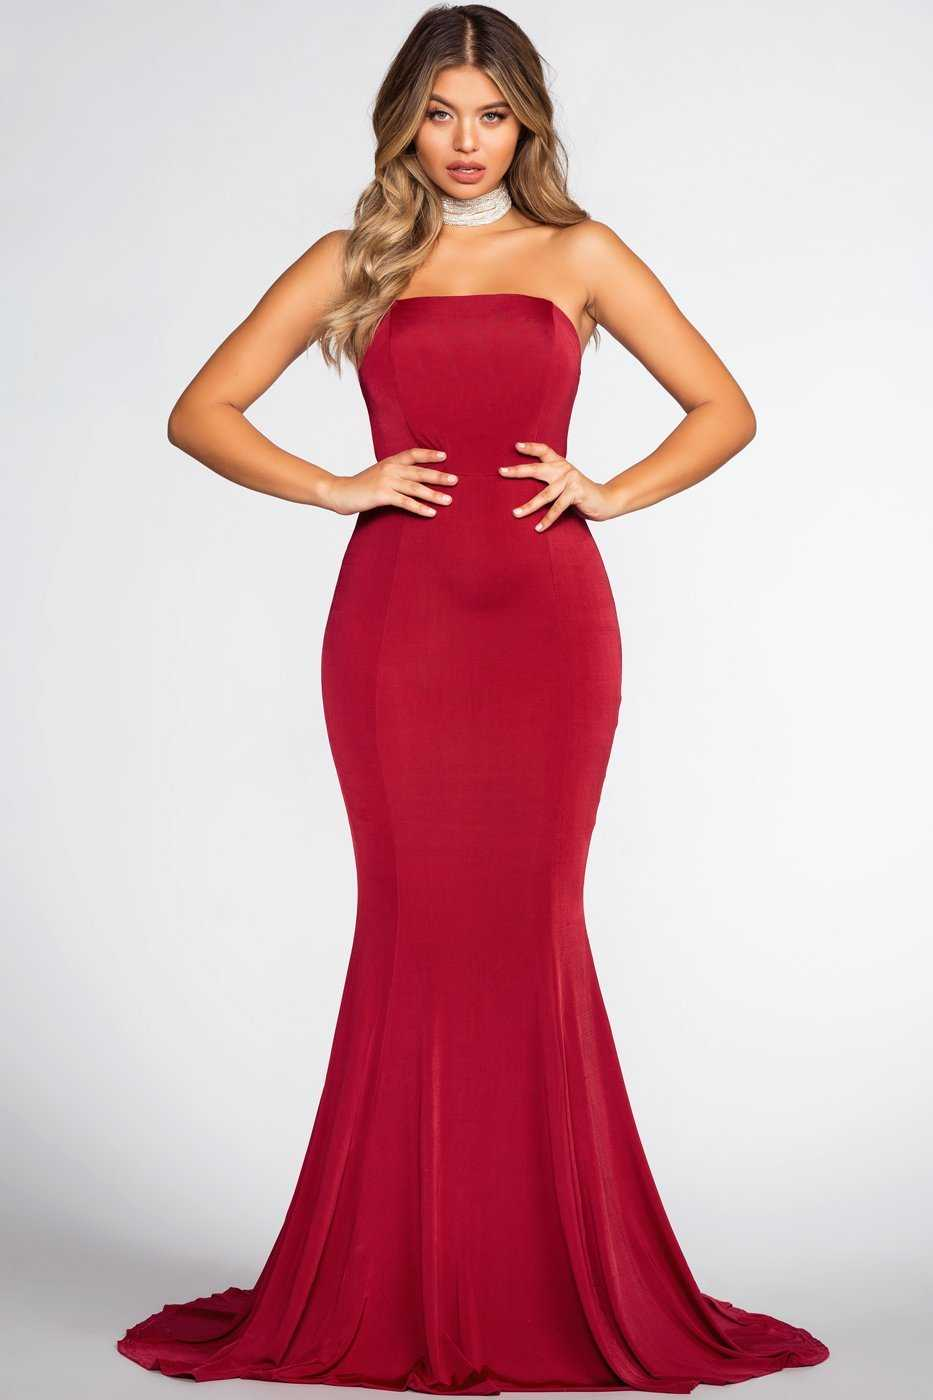 eab7d7b5891 ... Dresses - Forever Yours Maxi Dress - Red ...